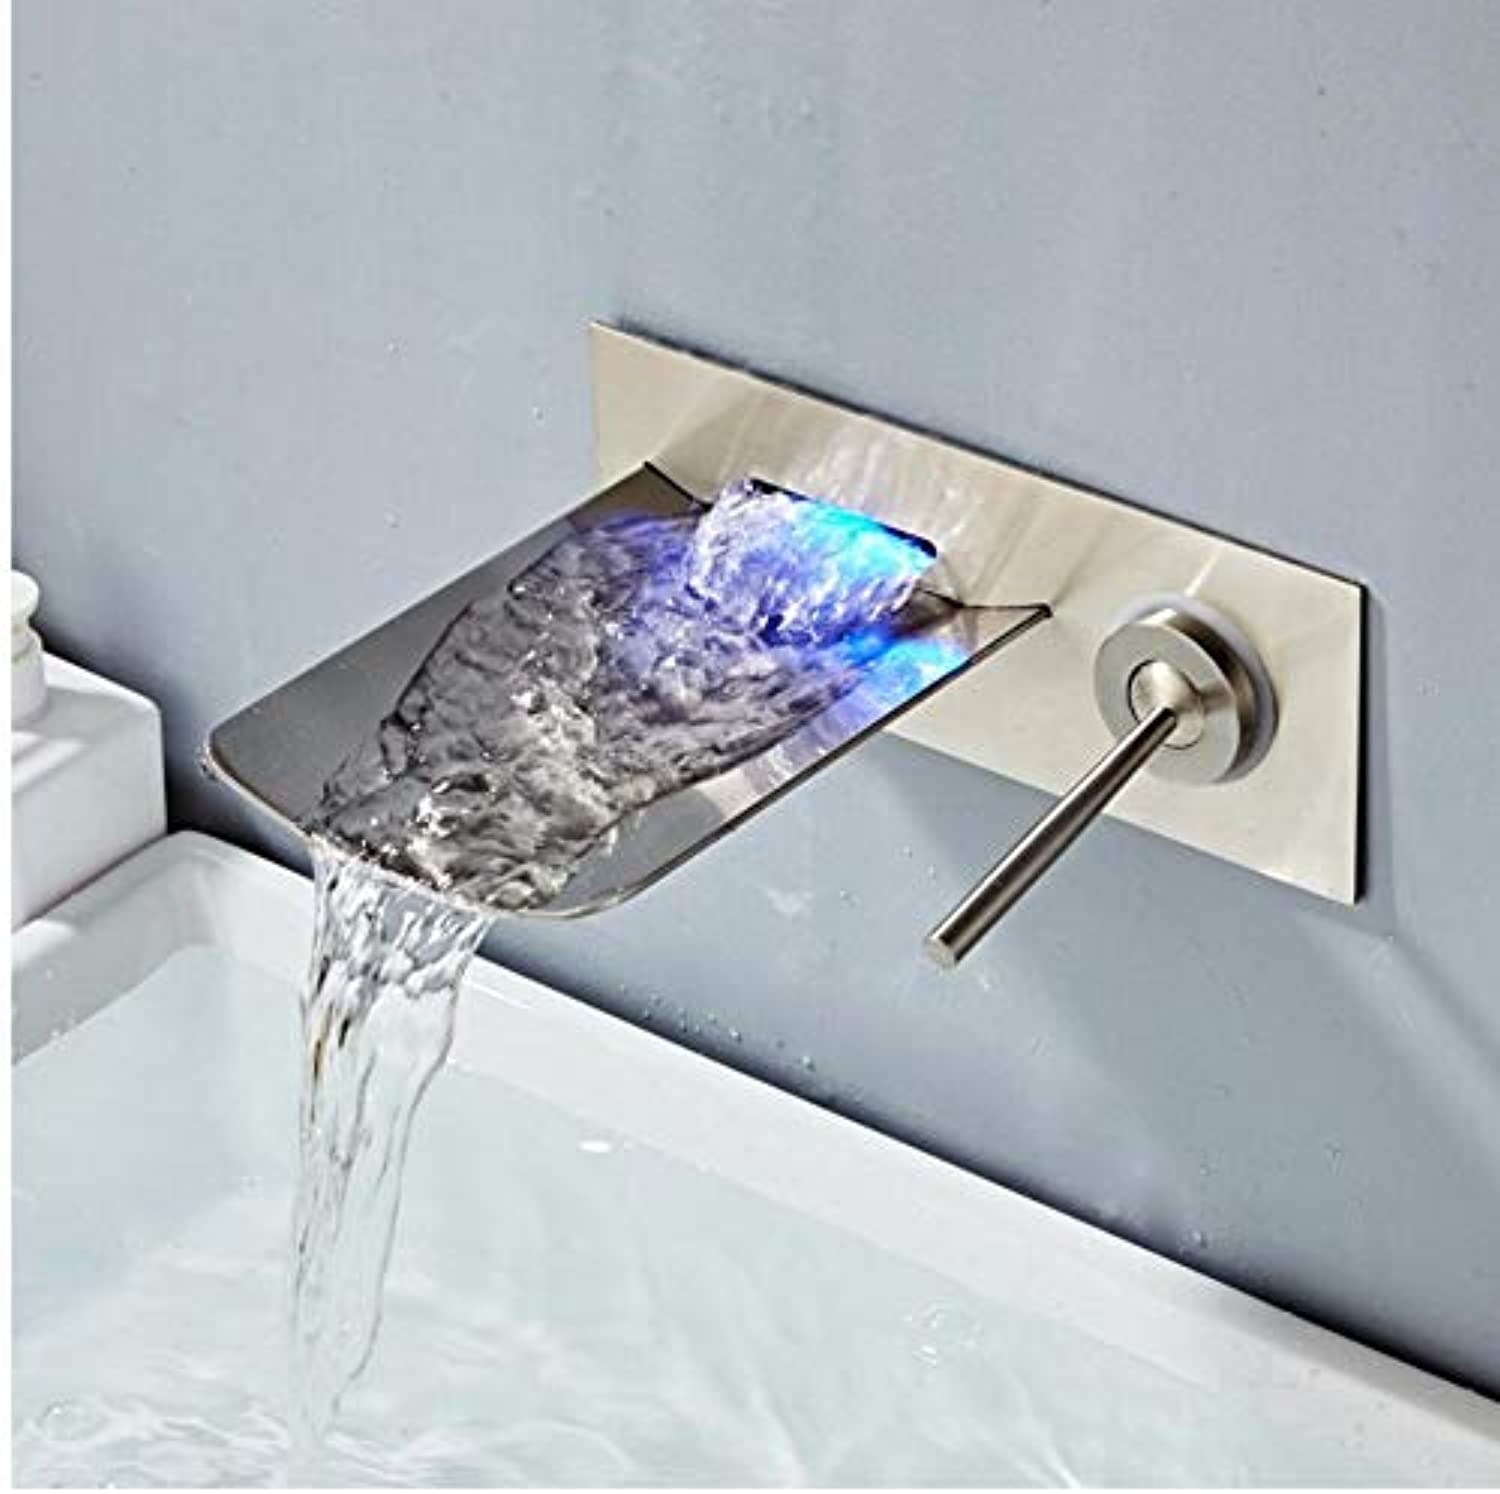 Faucet Bathroom Sink Faucet Wall Mounted Nickel LED Waterfall Mixer Bath Tap Temperature Control LED Faucet Chrome Black Finished